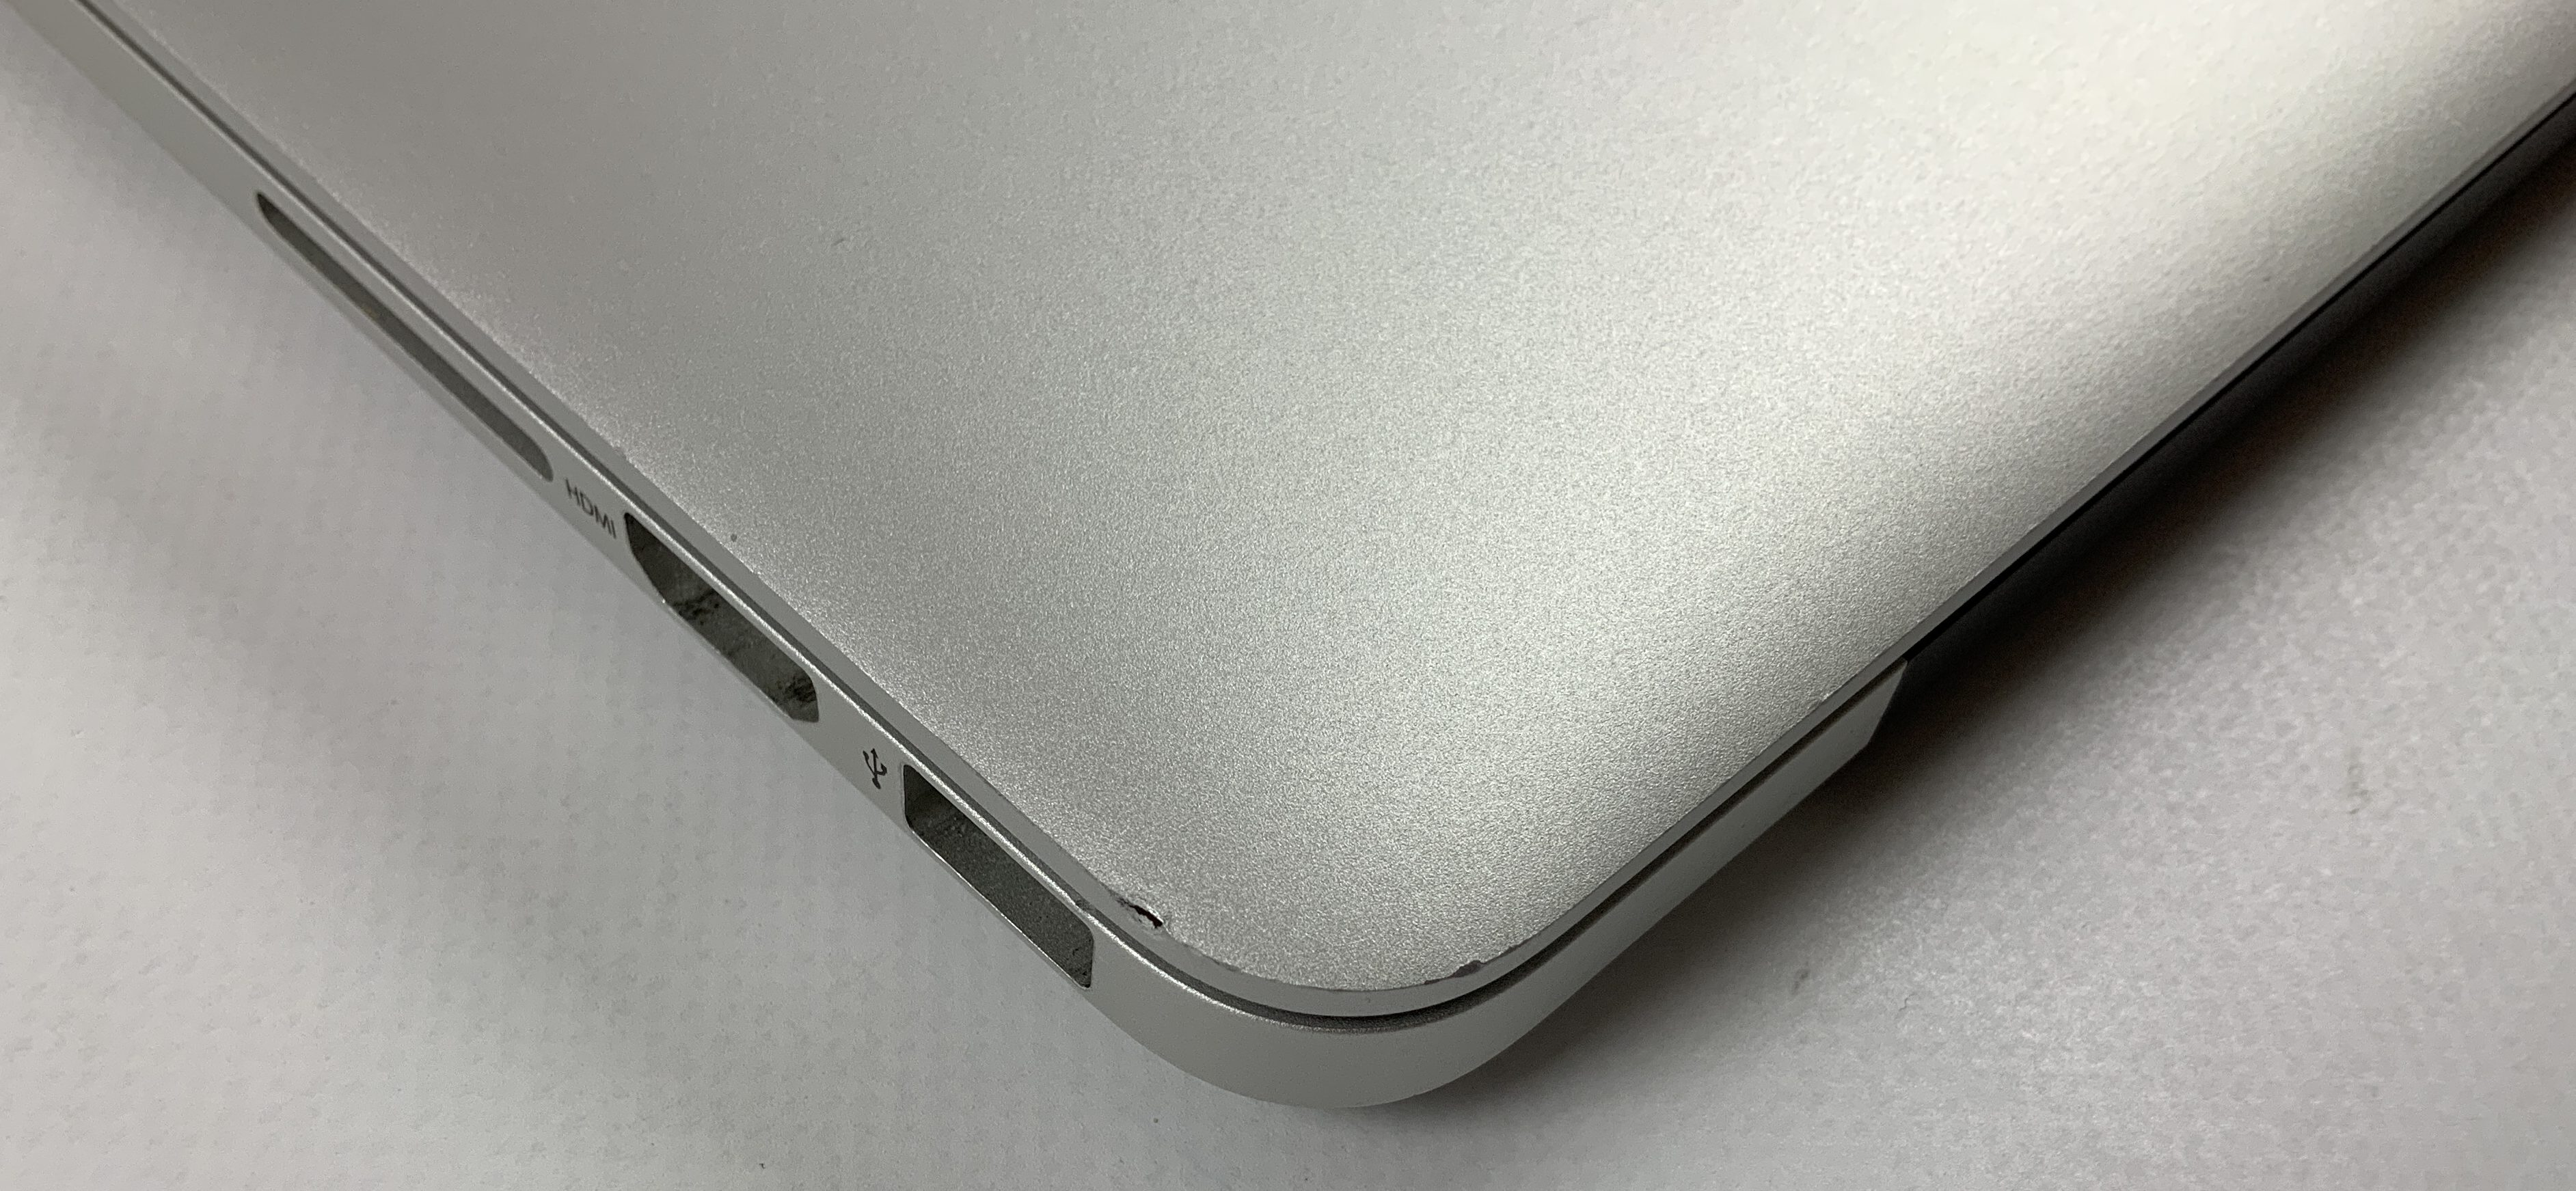 "MacBook Pro Retina 13"" Early 2015 (Intel Core i5 2.7 GHz 8 GB RAM 128 GB SSD), Intel Core i5 2.7 GHz, 8 GB RAM, 128 GB SSD, image 4"